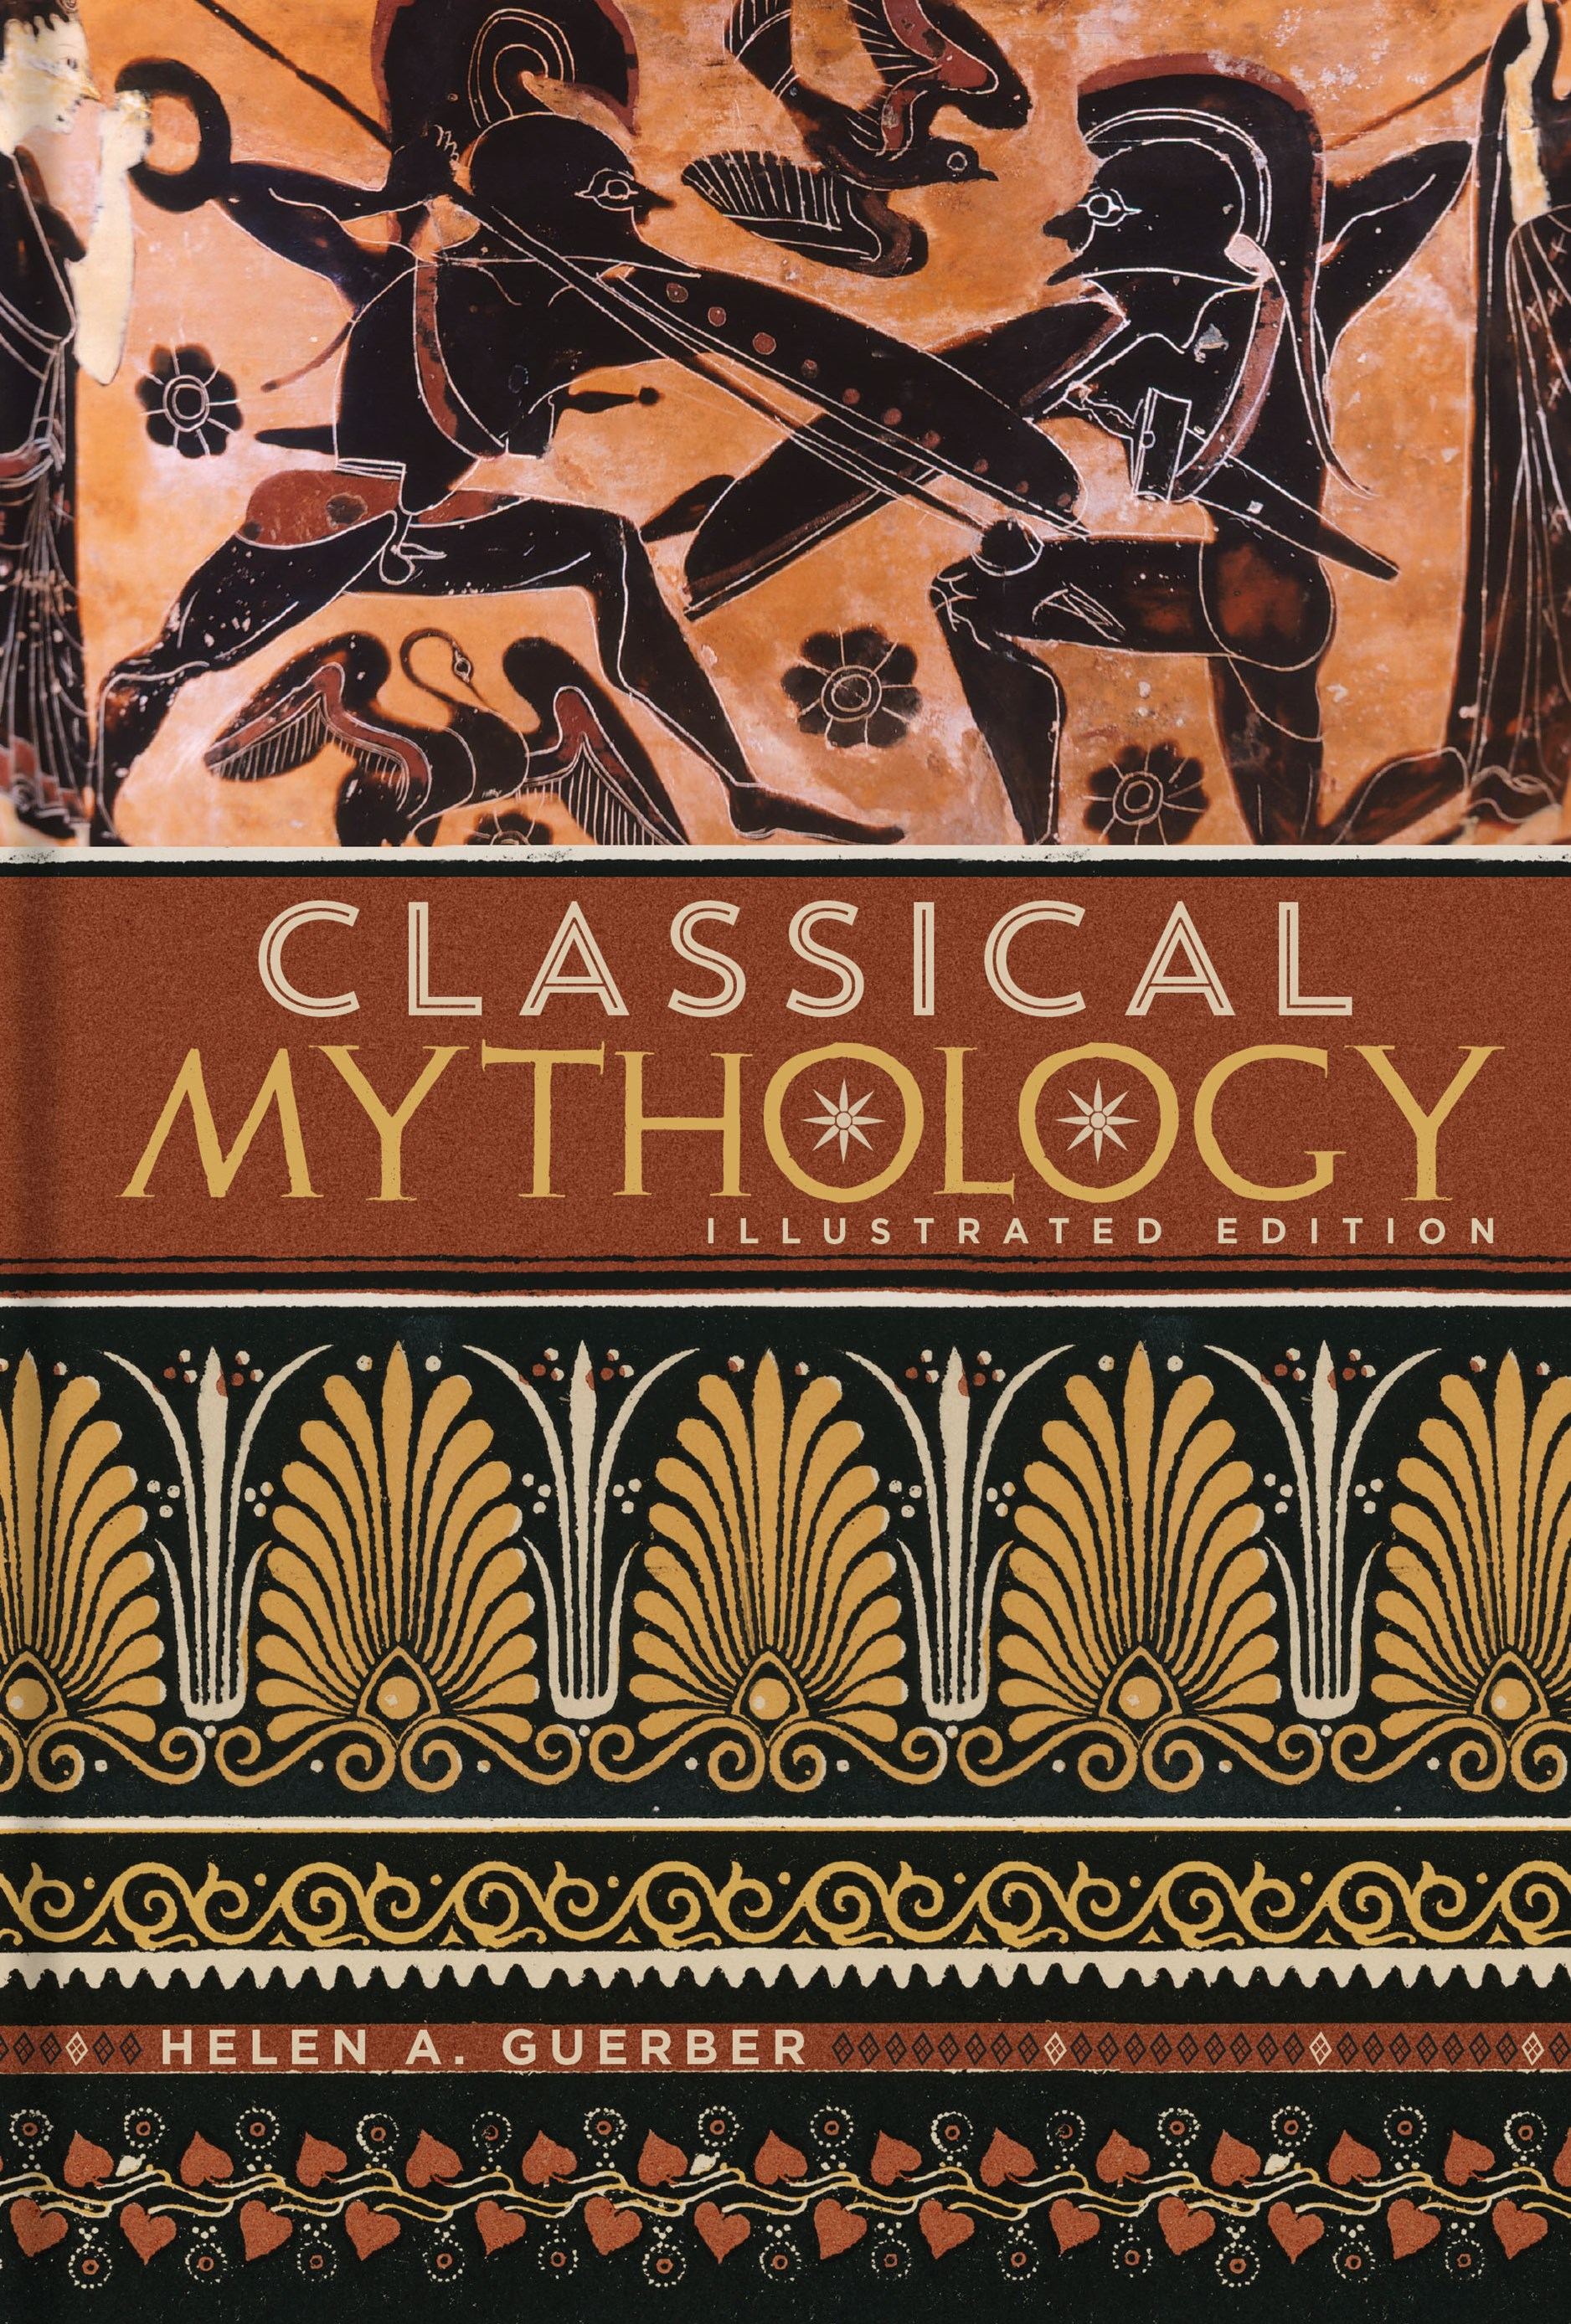 Classical Mythology: Illustrated Edition